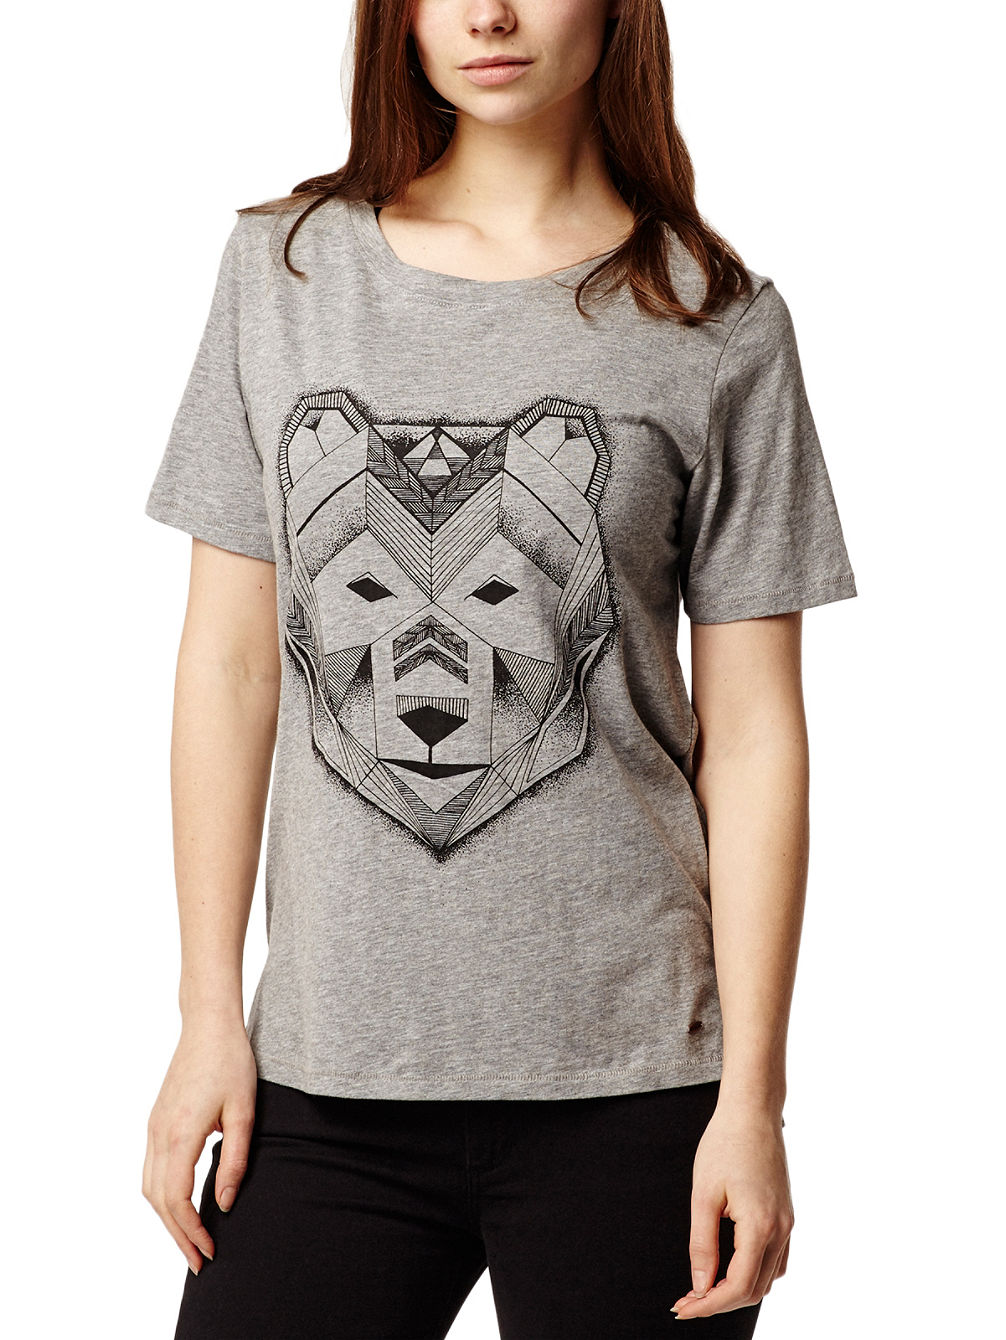 Buy o 39 neill americana t shirt online at blue for Start an online t shirt business at zero cost